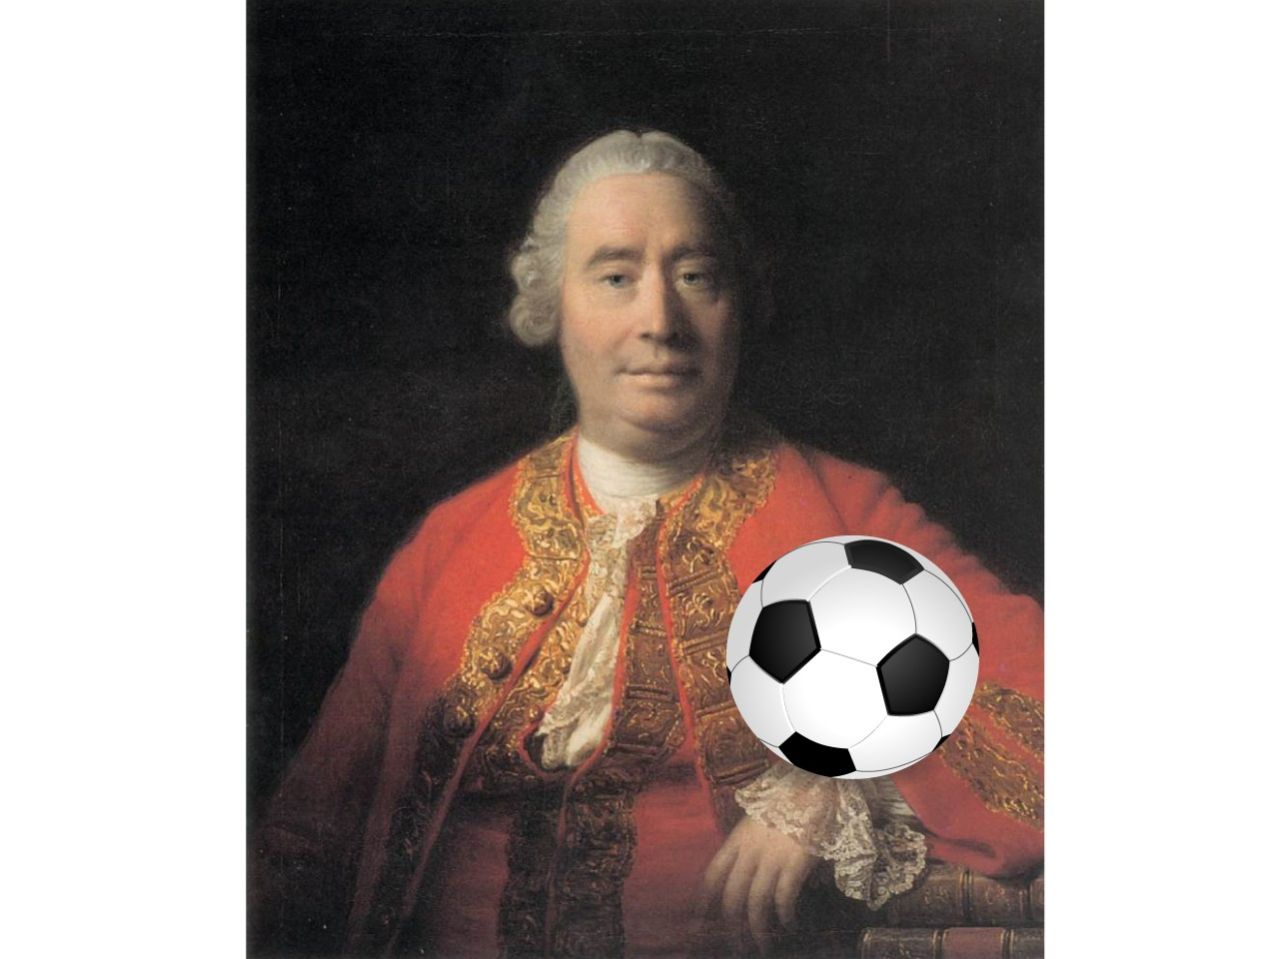 David Hume by Allan Ramsay (plus football)